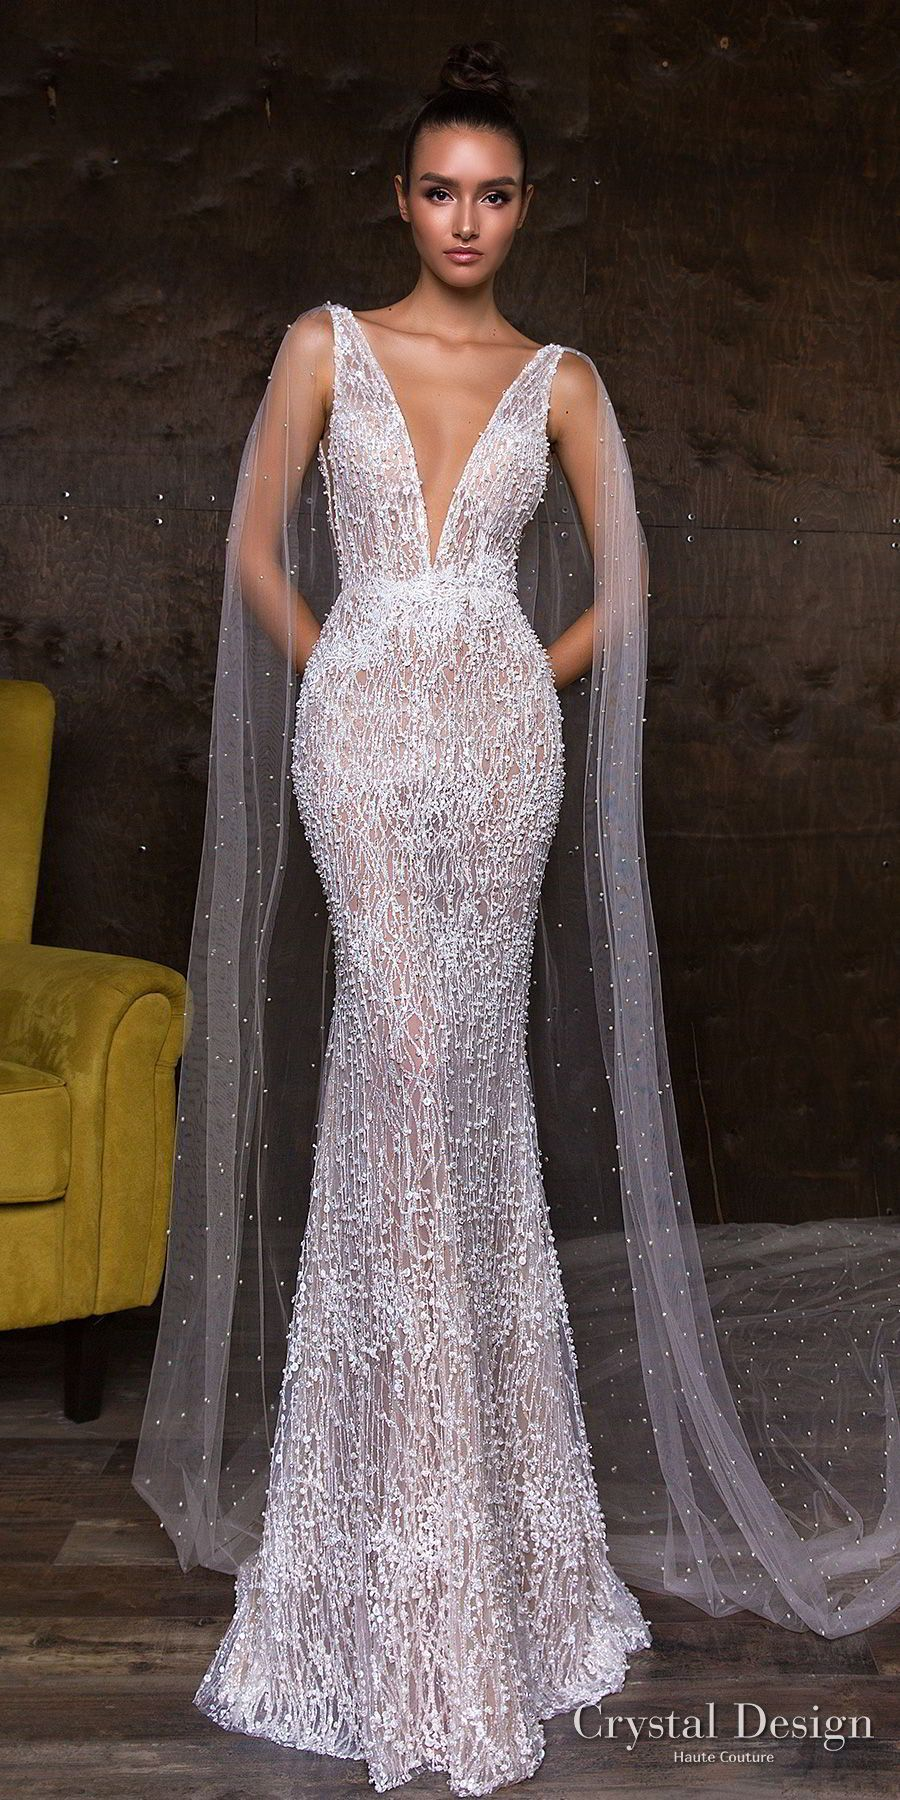 Crystal Design 2018 Sleeveless Deep V Neck Full Embellishment Elegant Glamorous Sheath Wedding Dress Sheer Back Watteau Train Leni Mv